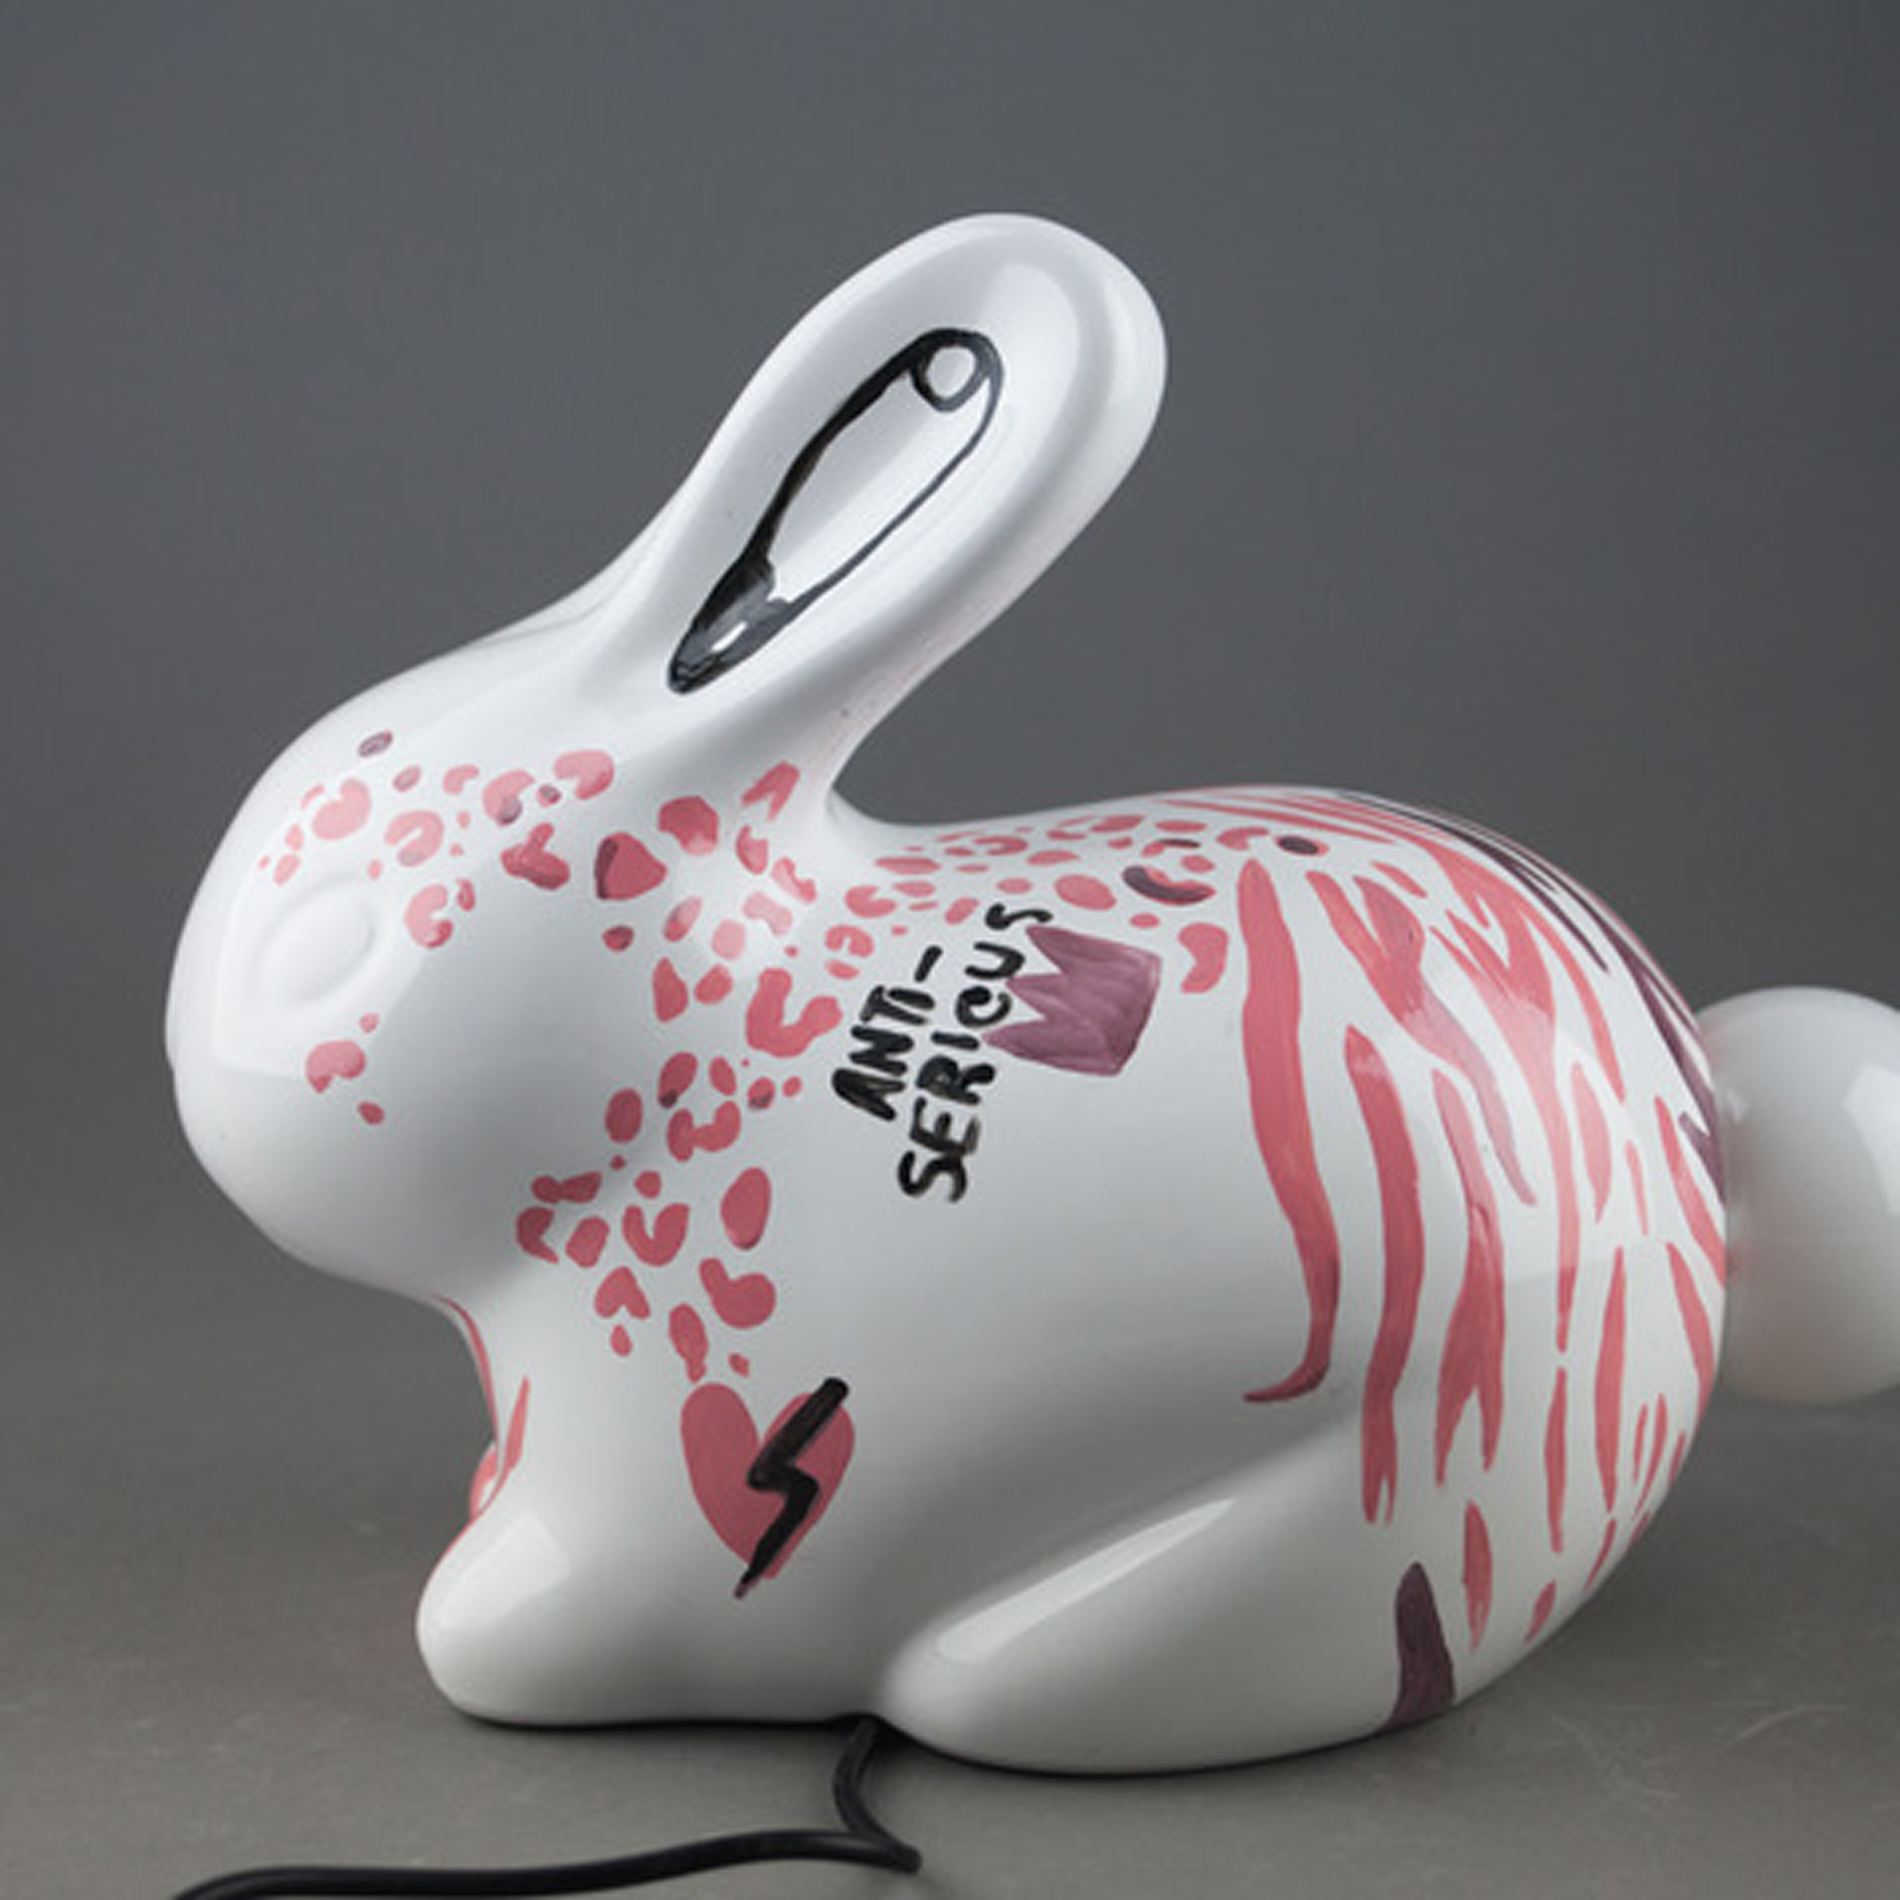 The Great York Bunny Search Illustrator Buttercrumble